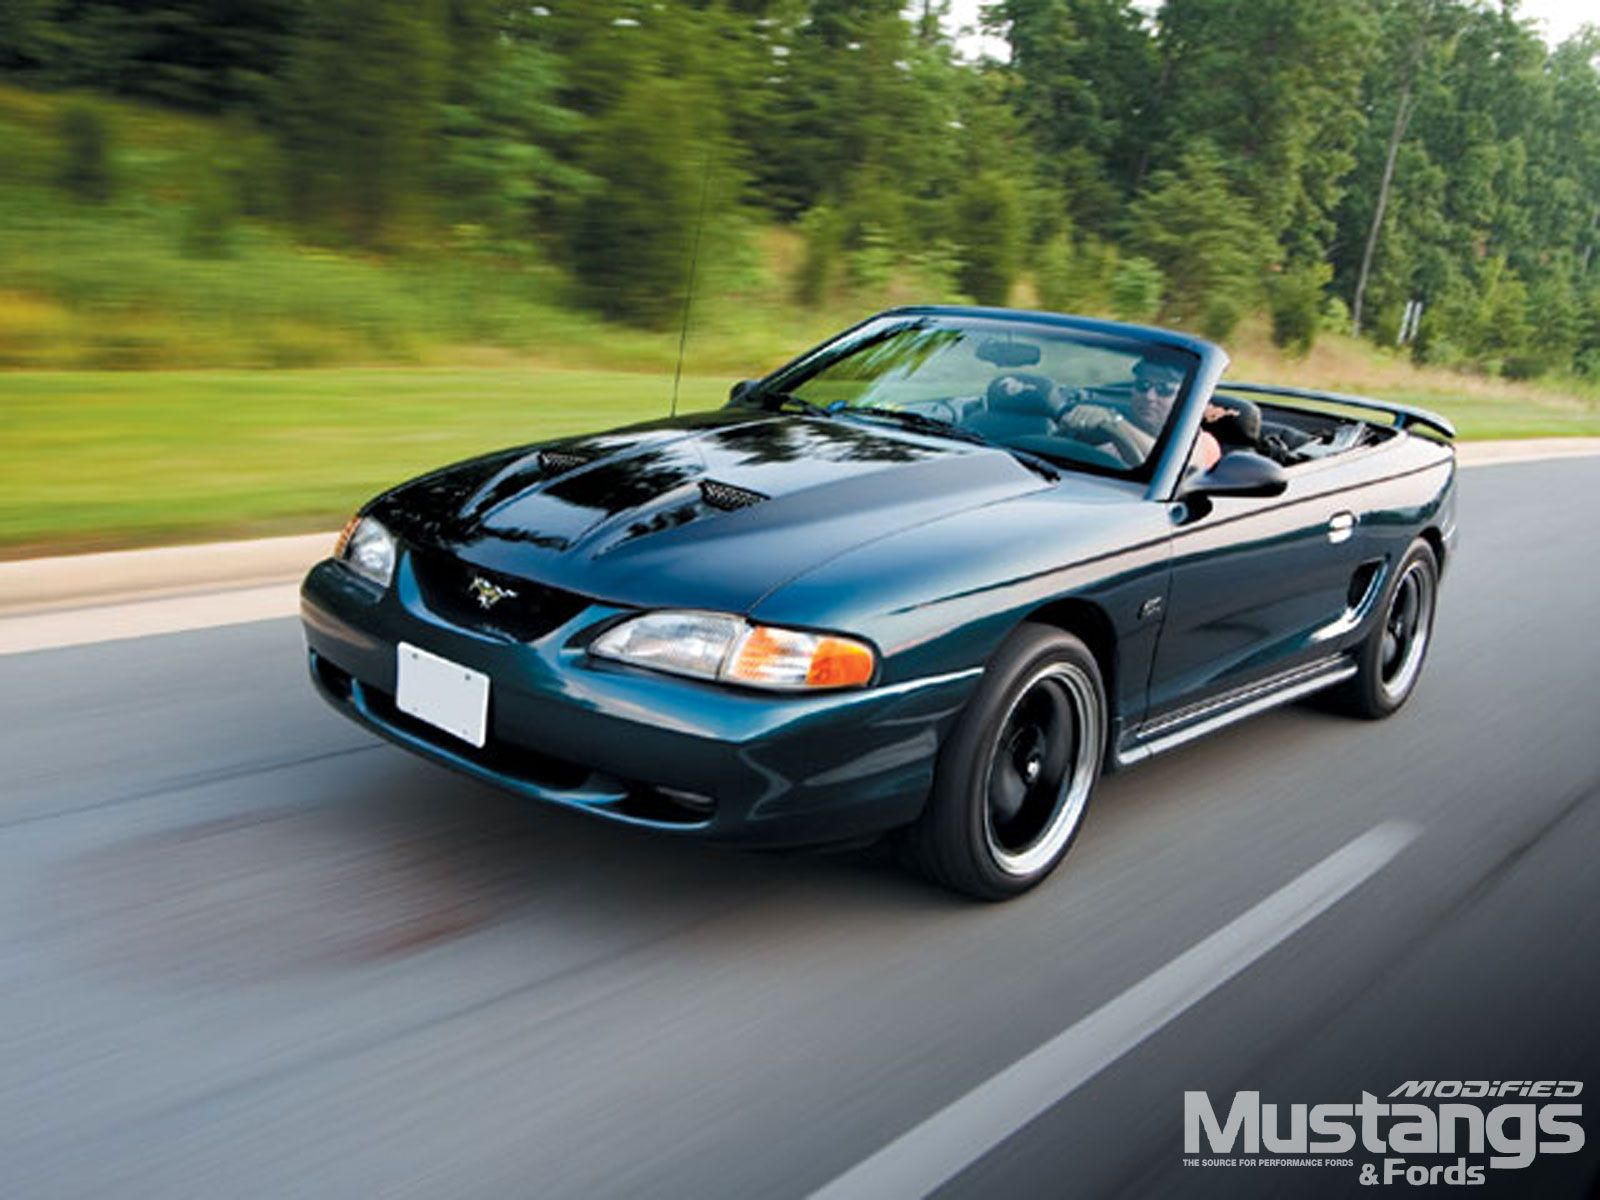 1994 ford mustang gt ford mustang gt motor1 com 1994 ford